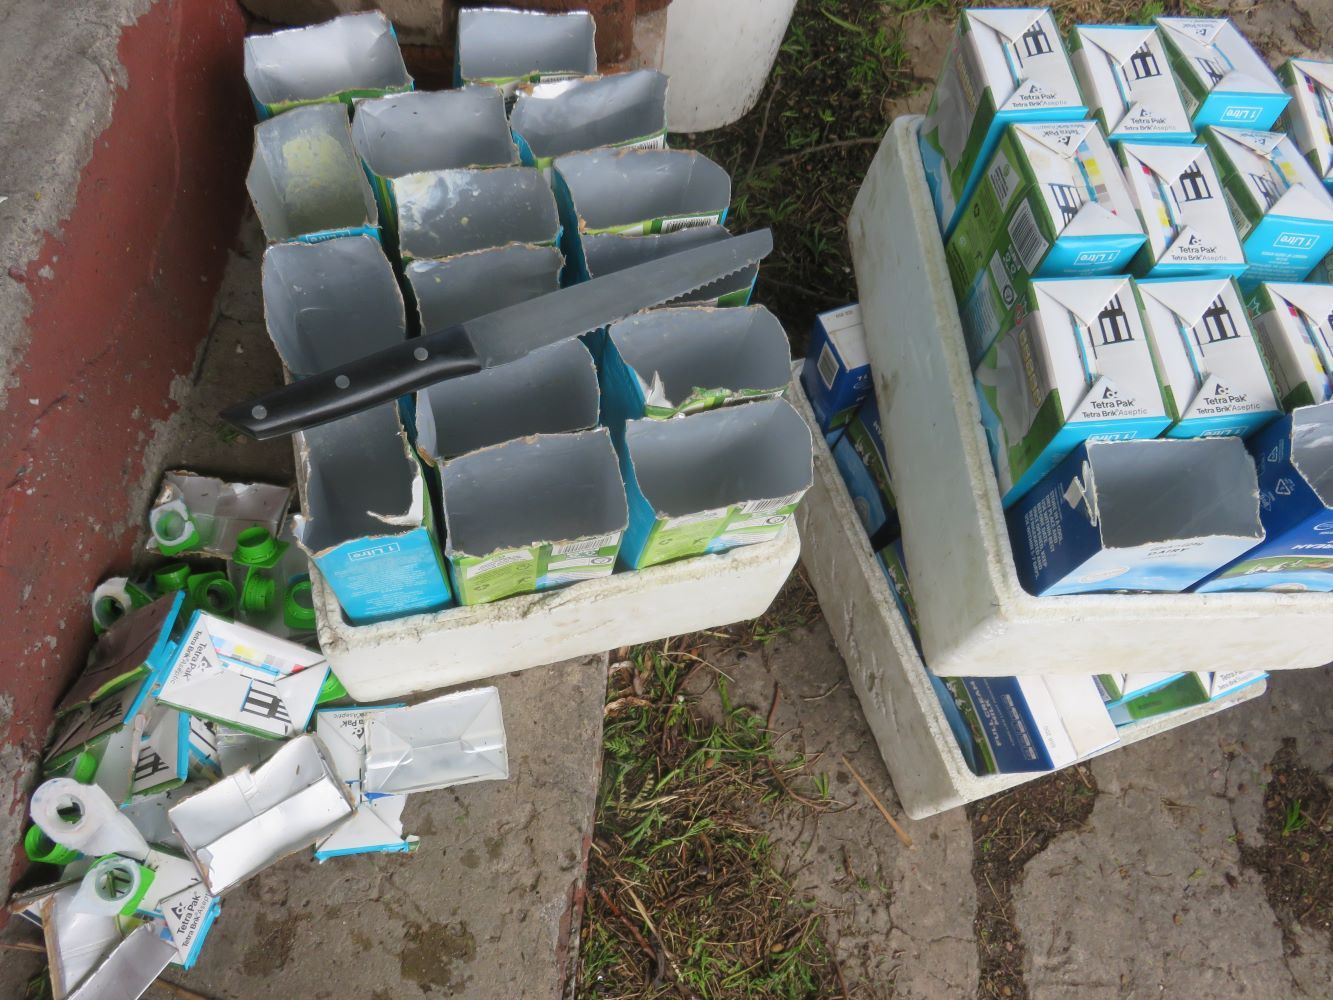 De-capping the milk cartons. They have a waxed cardboard exterior and a plastic and foil lining.